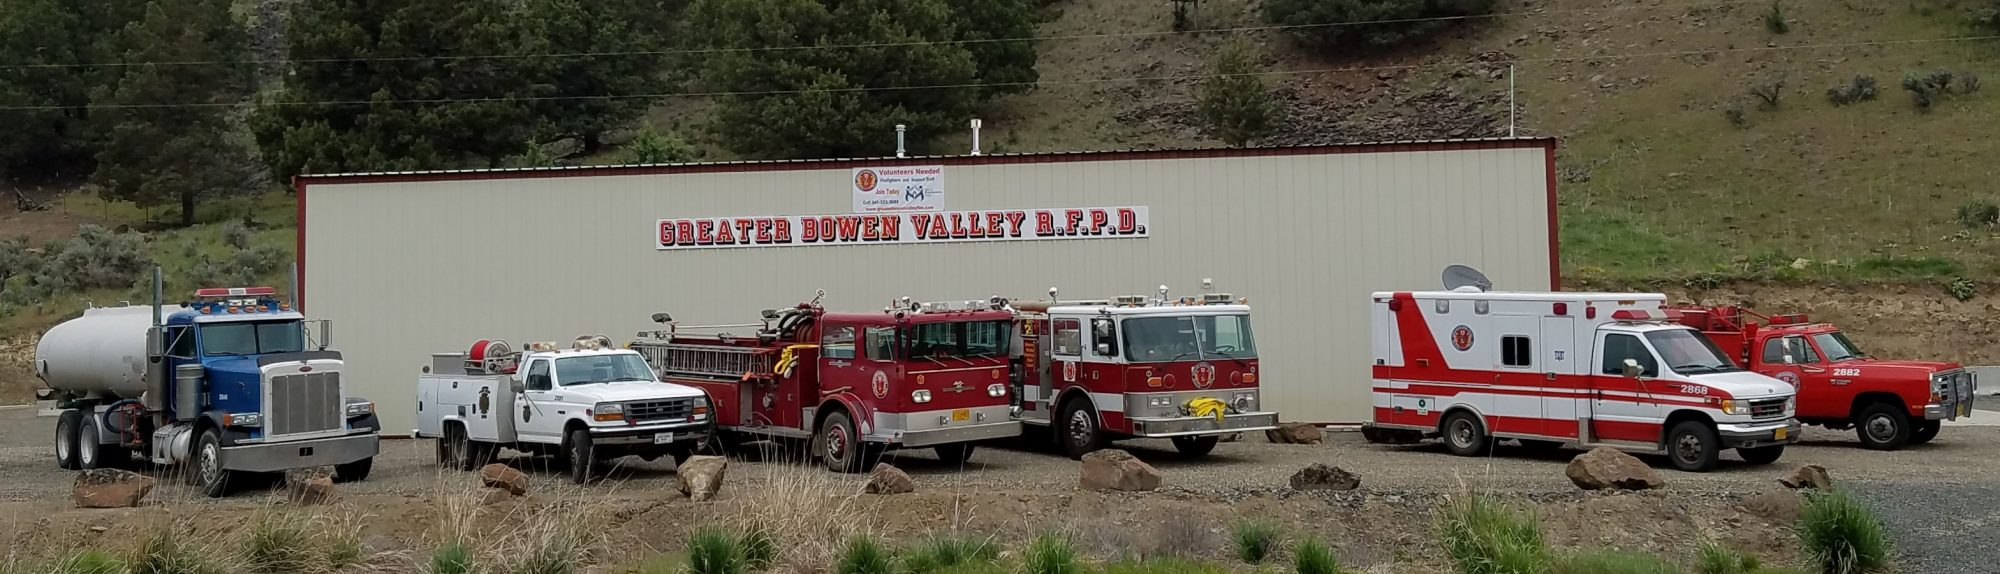 Greater Bowen Valley Rural Fire Protection District